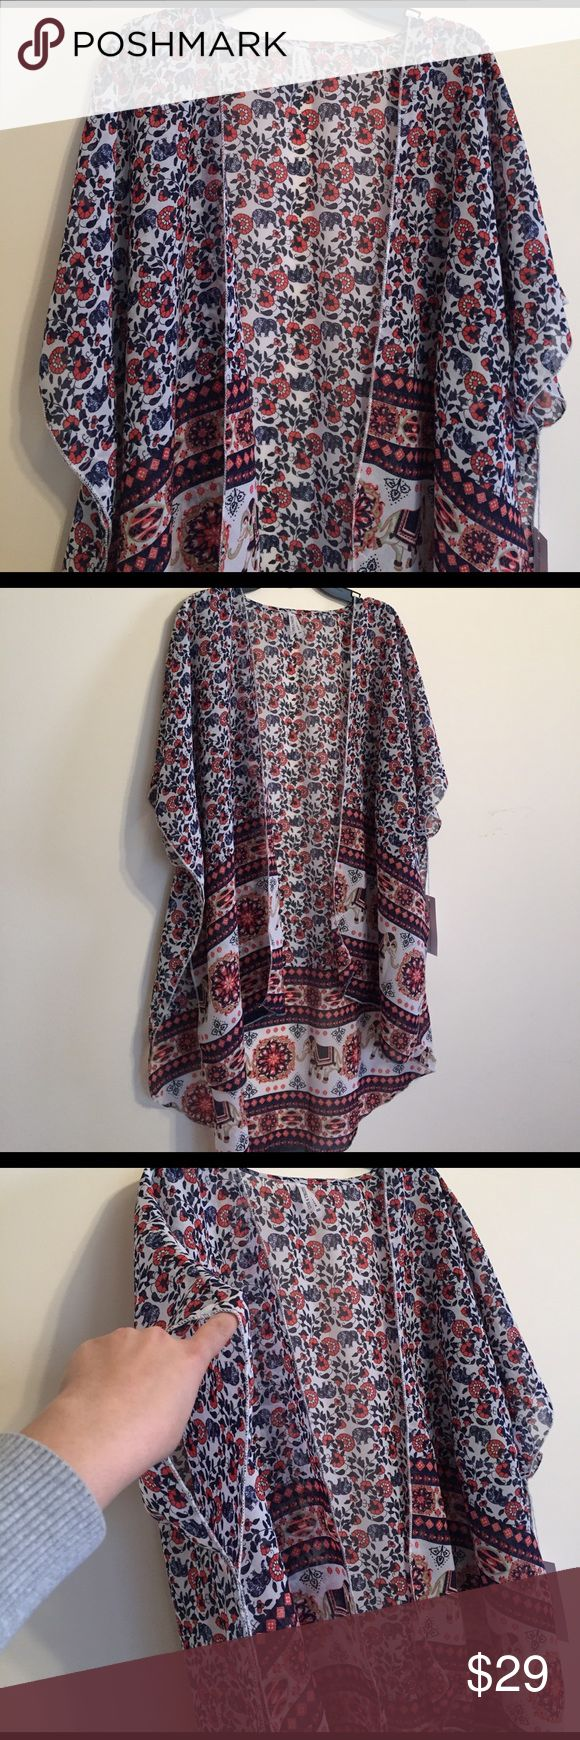 ✨Removing in 30 minutes✨Gorgeous Cover Up/Robe Incredibly gorgeous Cover Up - Similar to LuLaRoe Monroe - New with tags LuLaRoe Intimates & Sleepwear Robes